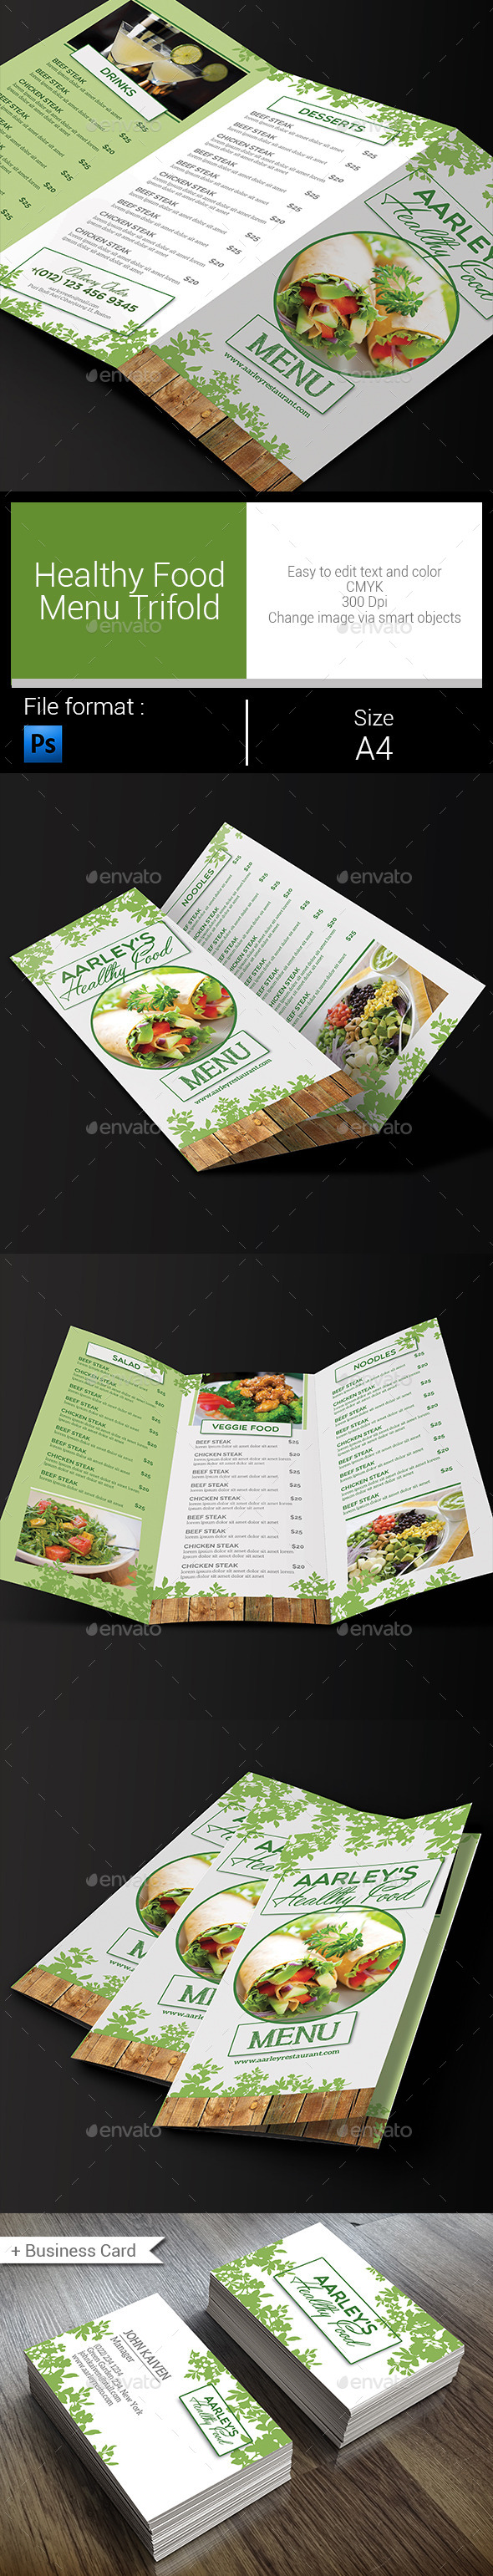 GraphicRiver Healthy Food Menu Trifold 10311054